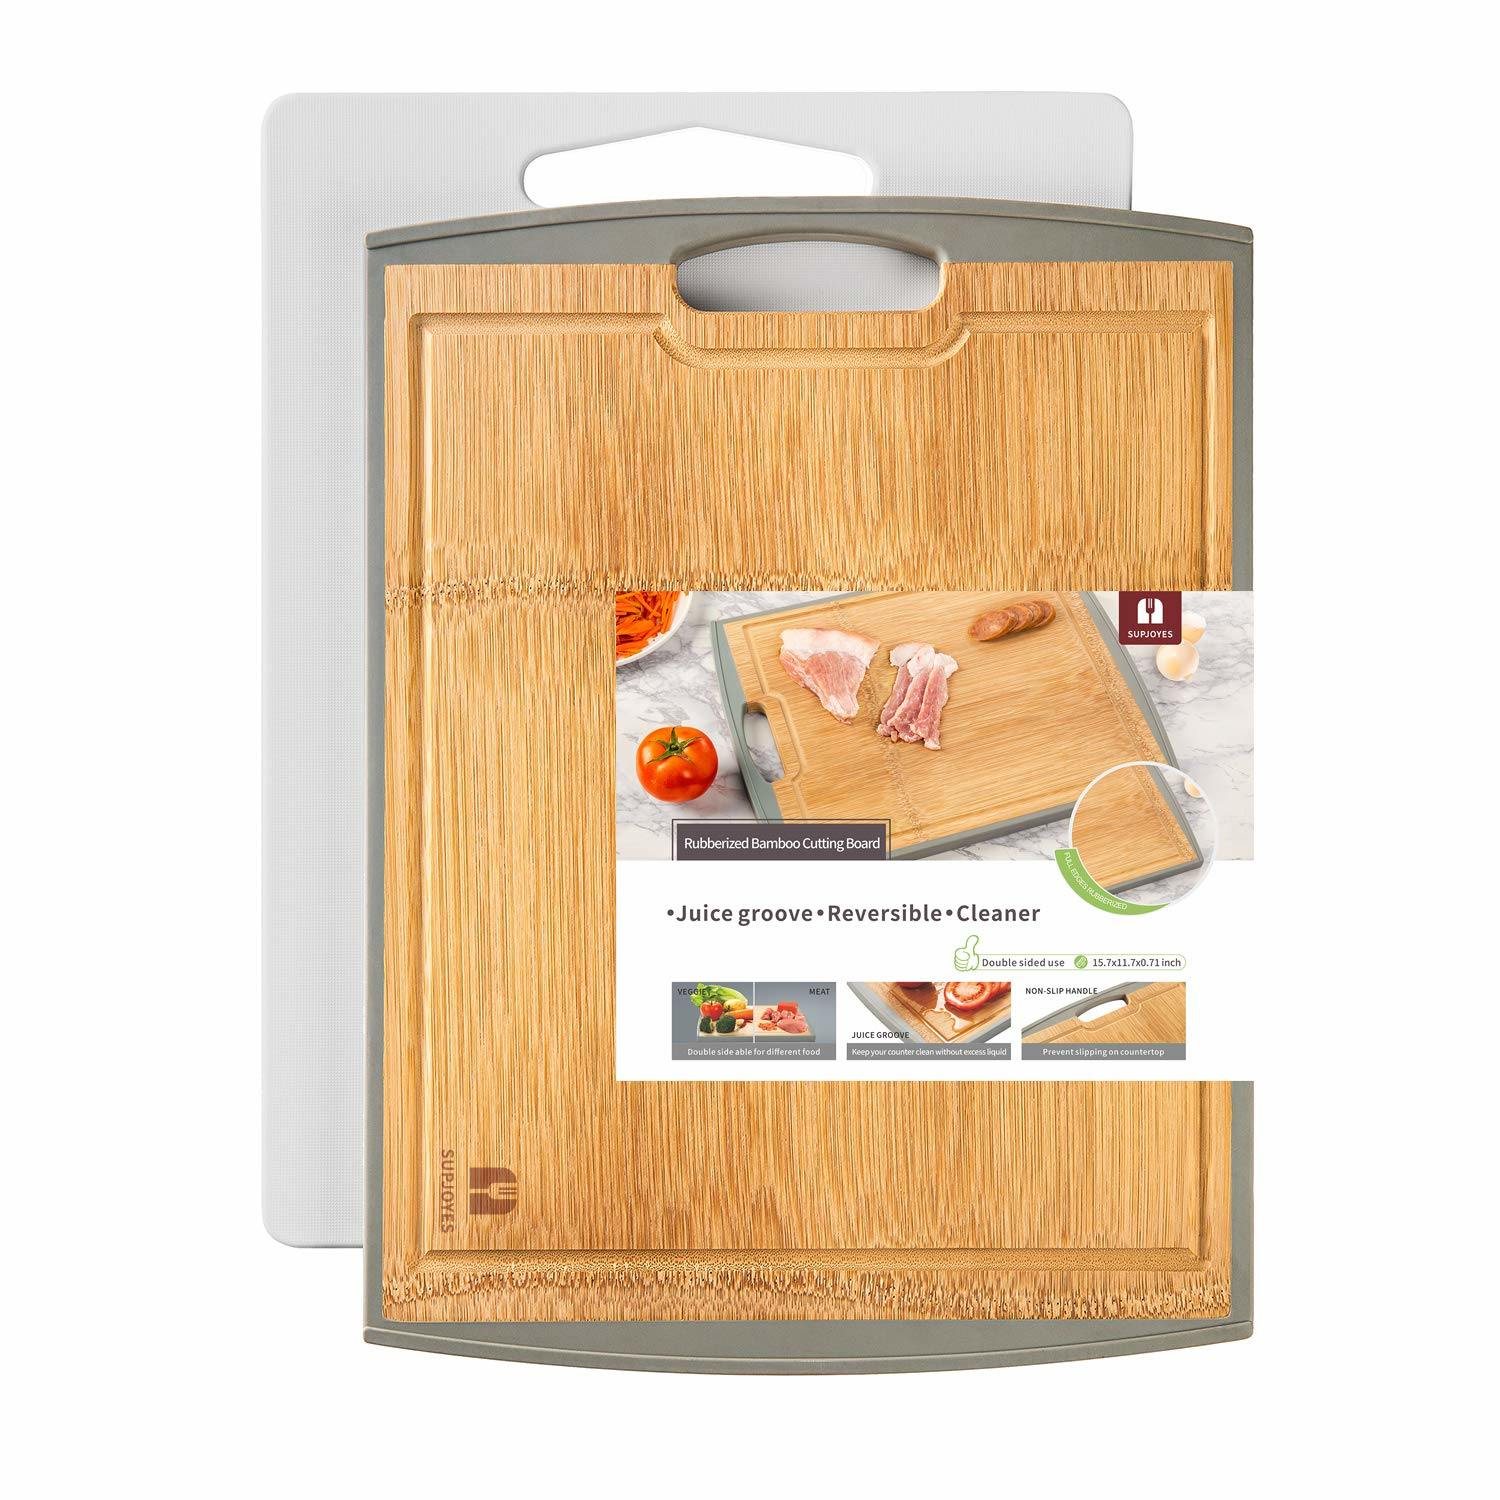 China Cutting Boards For Kitchen Bamboo Wood Butcher Block For Meat Plastic Chopping Board Large Cutting Board Set Of 2 Piece Non Slip With Handle China Chopping Board And Antibacterial Price